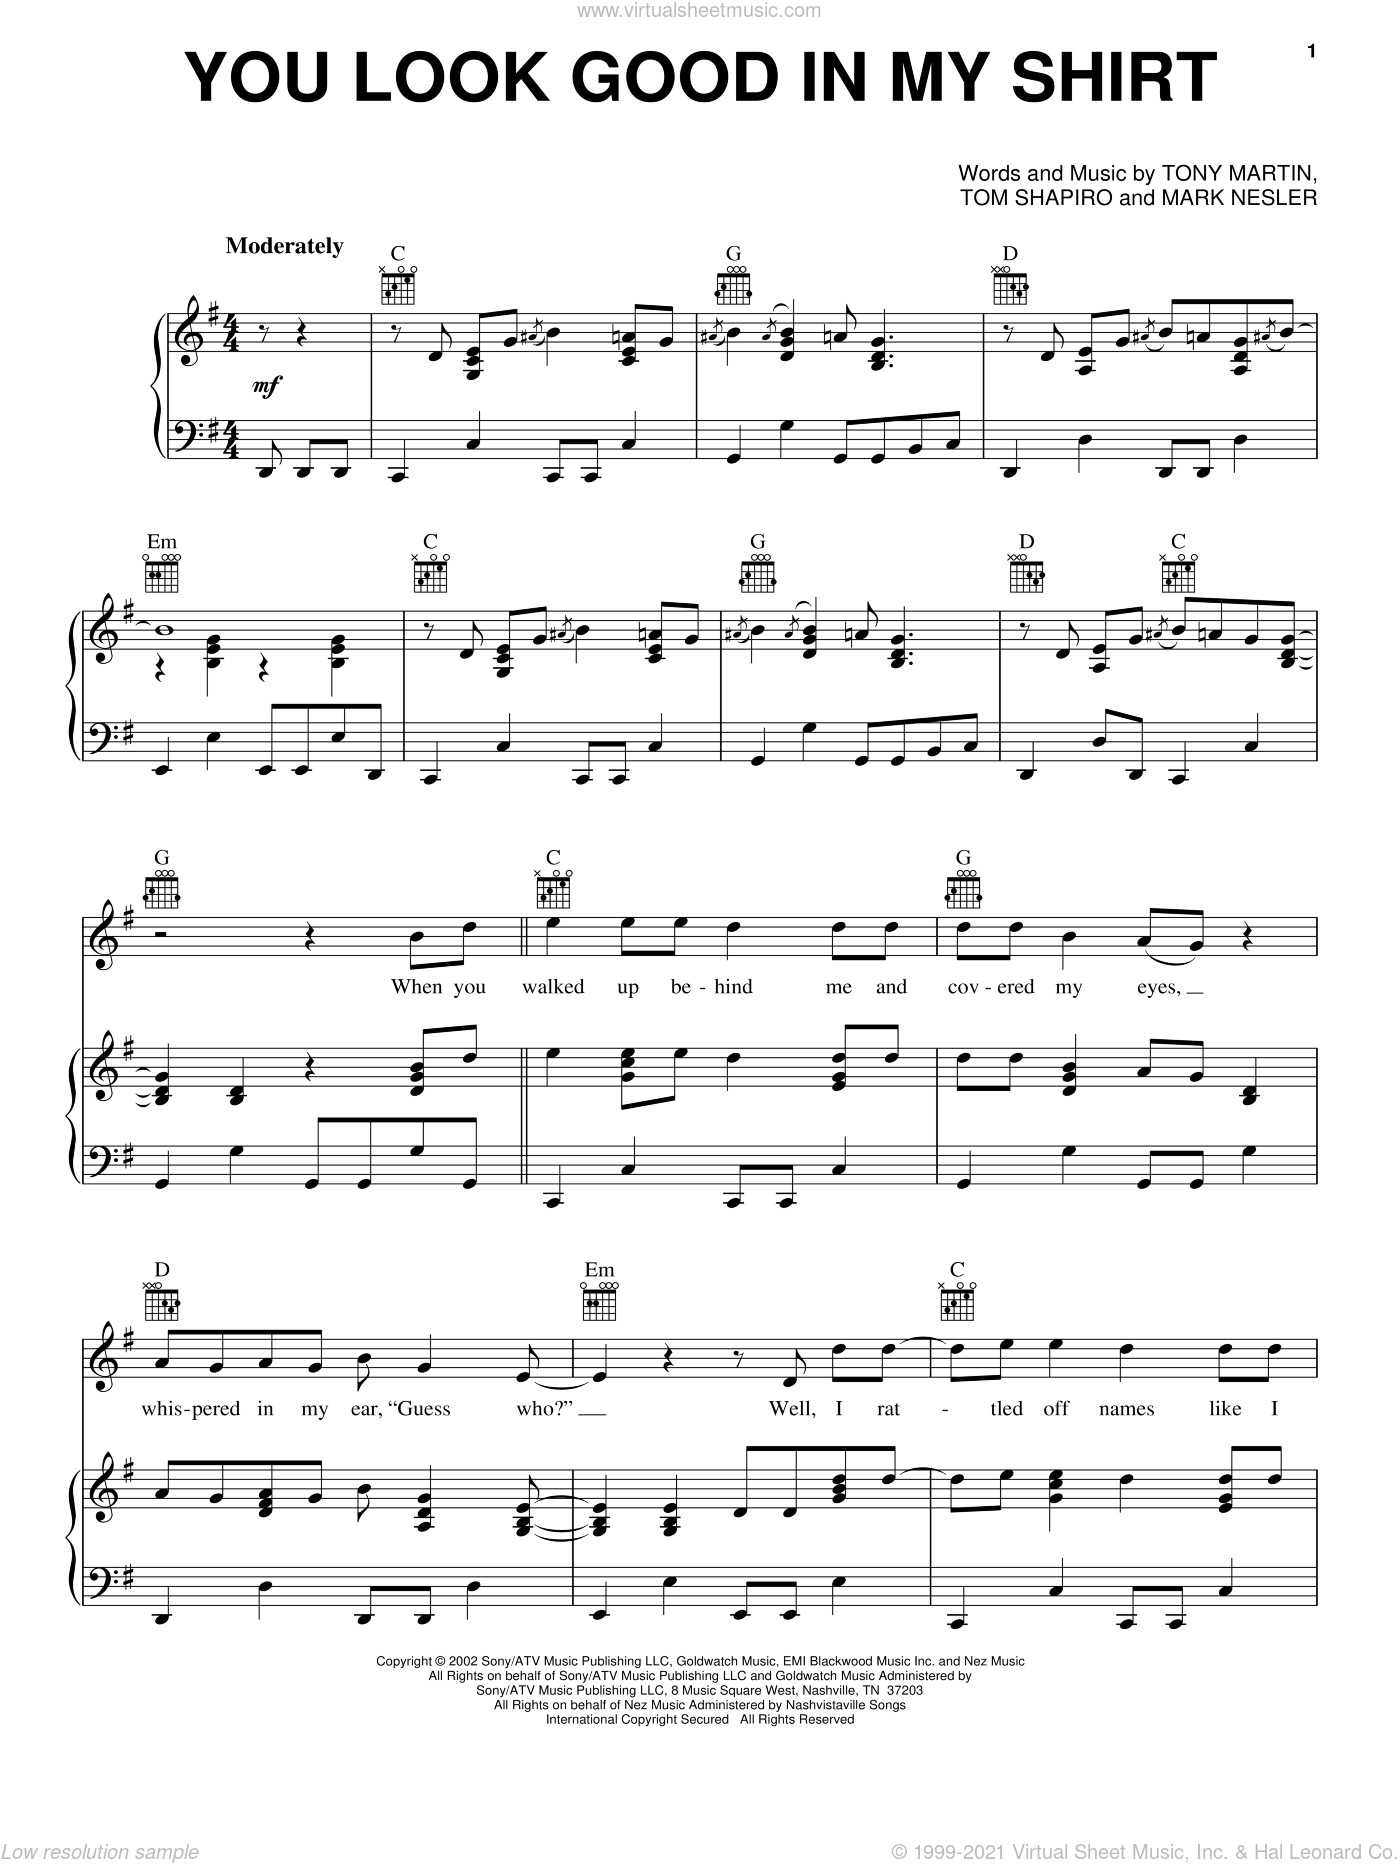 You Look Good In My Shirt sheet music for voice, piano or guitar by Keith Urban, Mark Nesler, Tom Shapiro and Tony Martin, intermediate skill level